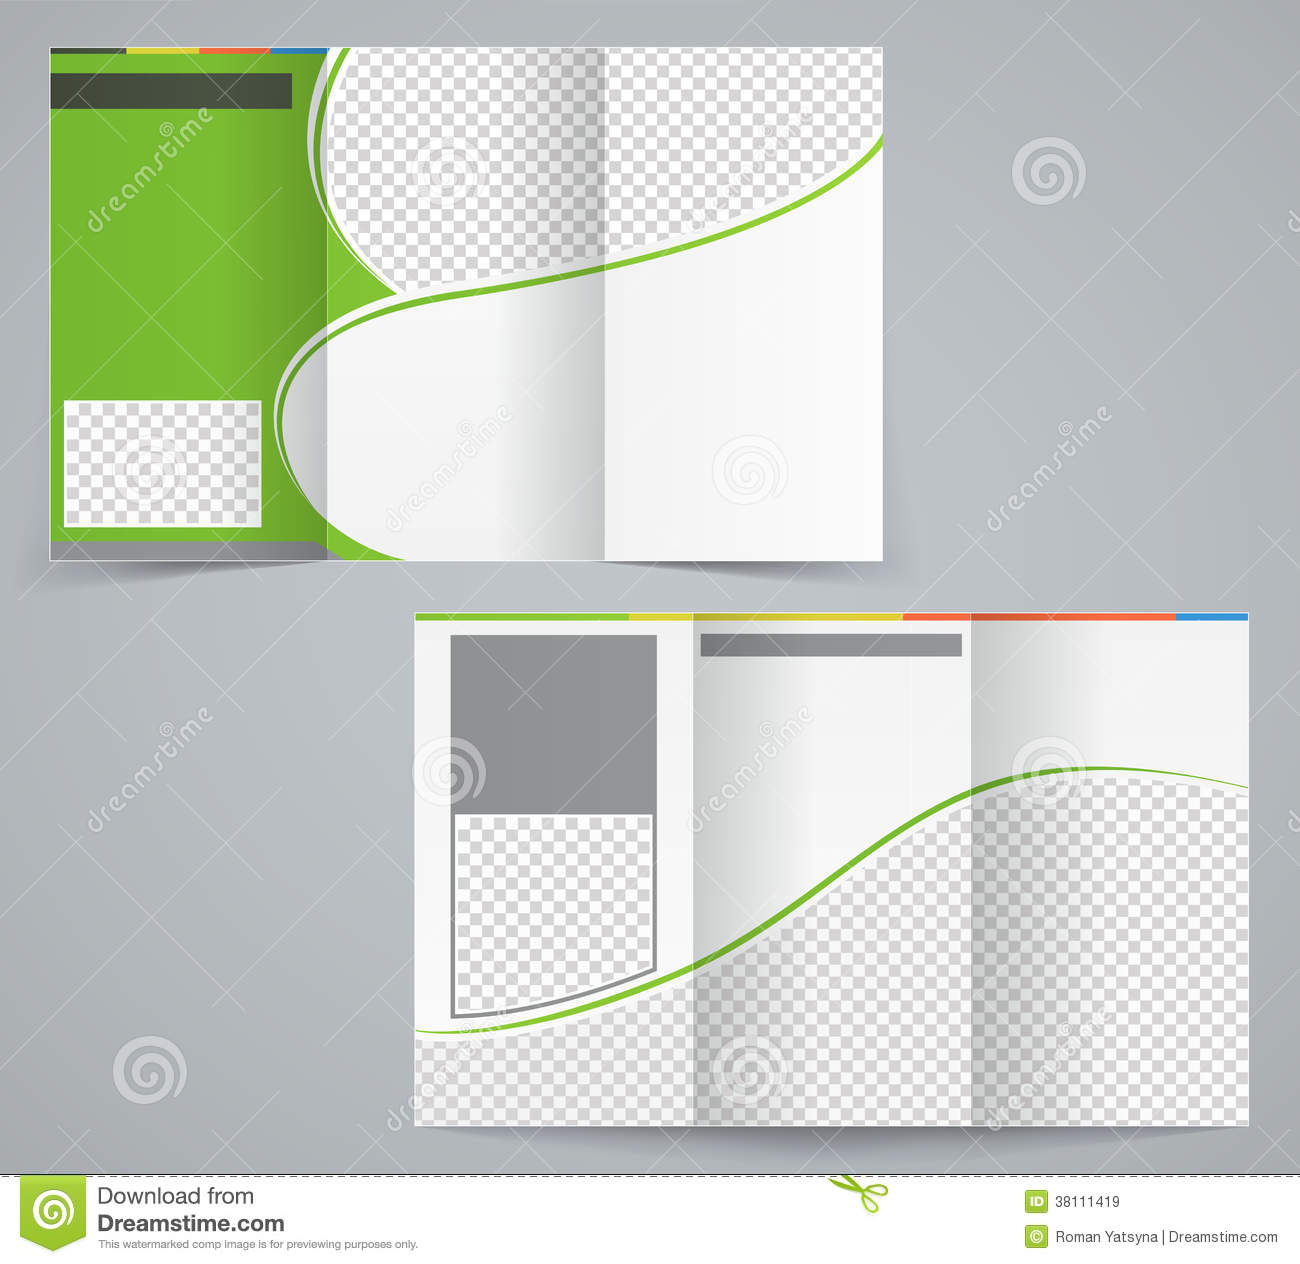 Tri Fold Business Brochure Template, Vector Green  Free Blank Flyer Templates